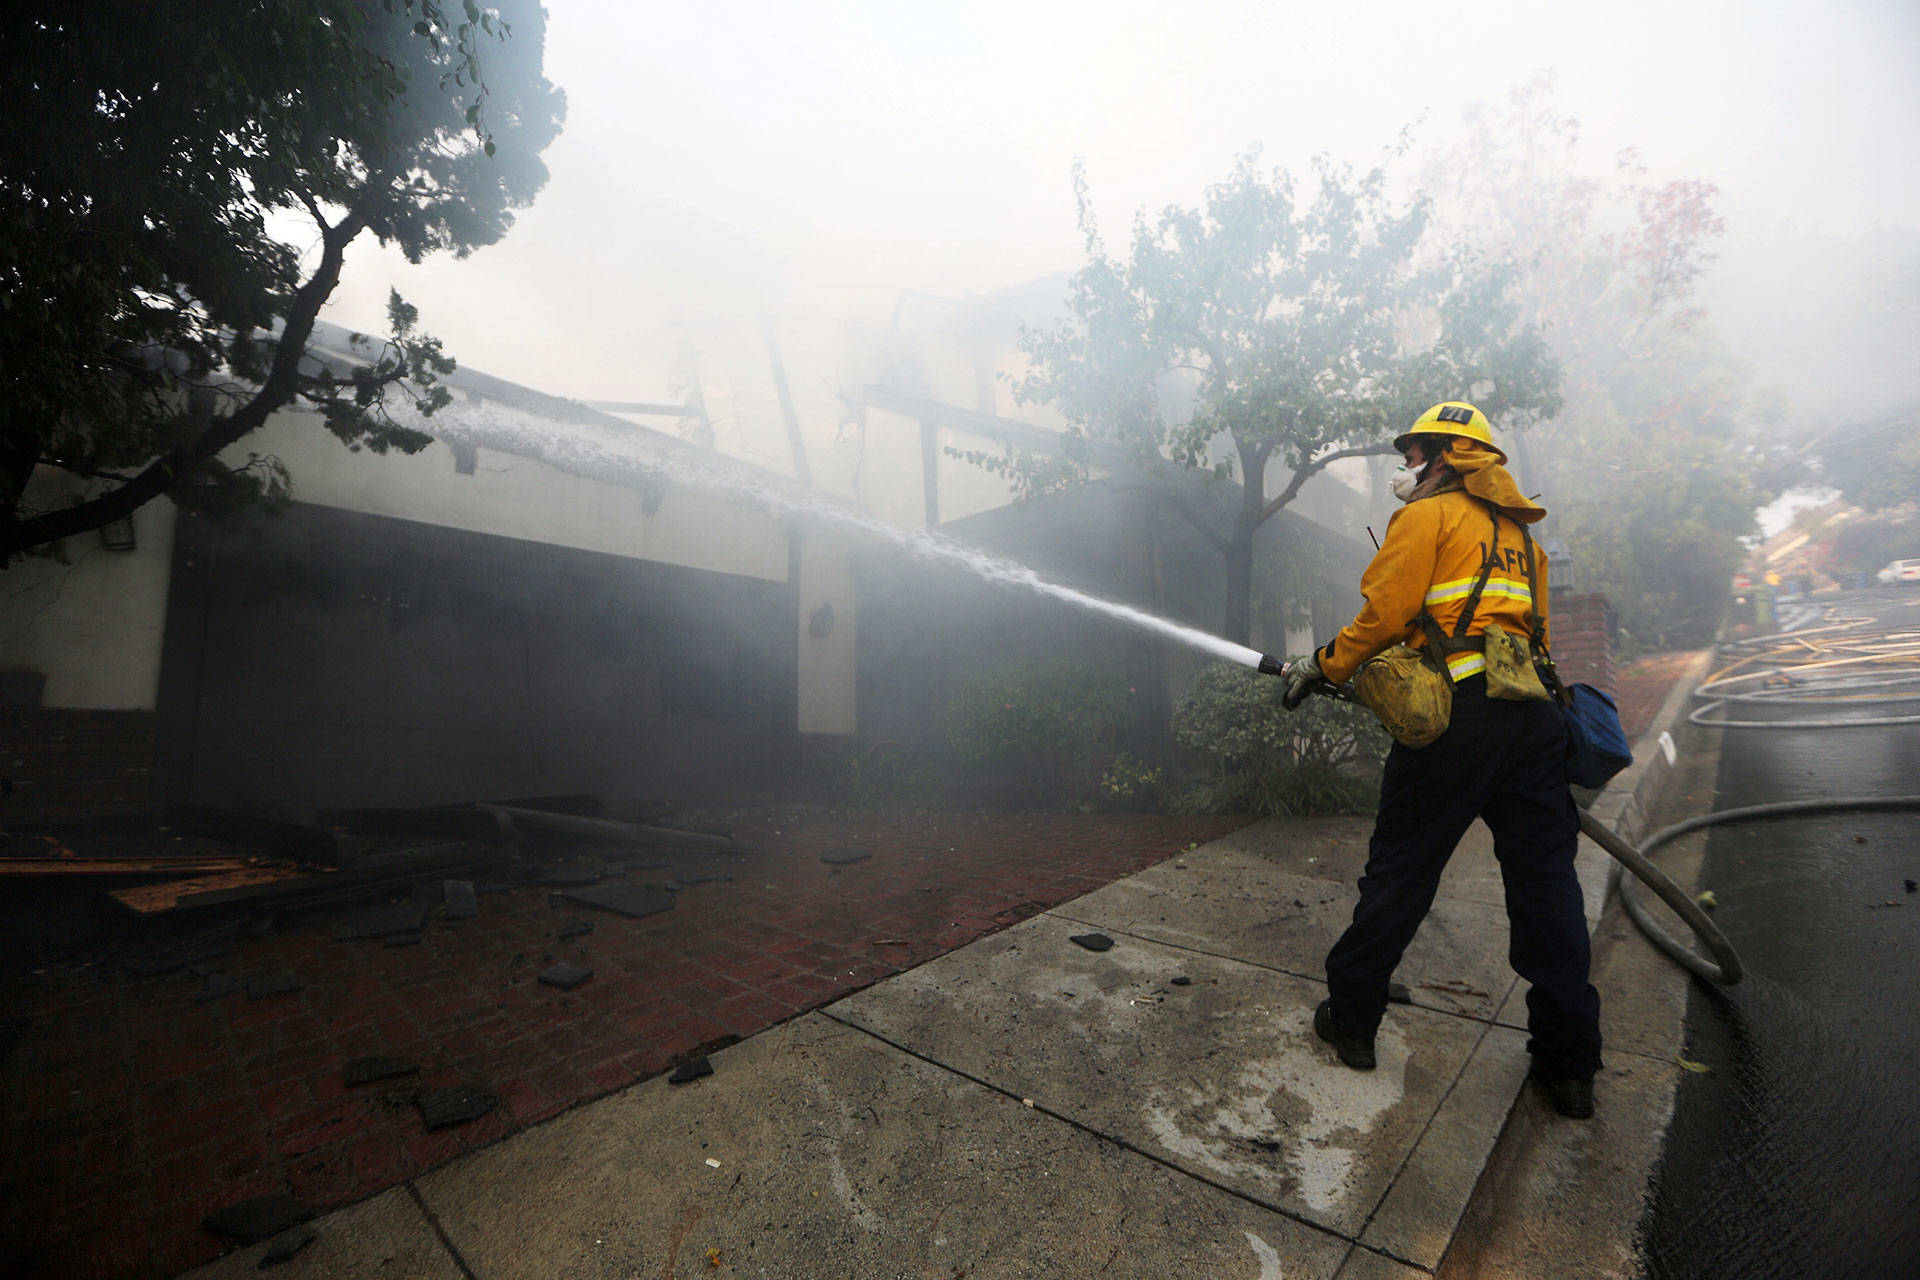 A firefighter sprays water on a burning home in the wealthy Bel-Air neighborhood during the Skirball Fire on Dec. 6, 2017.